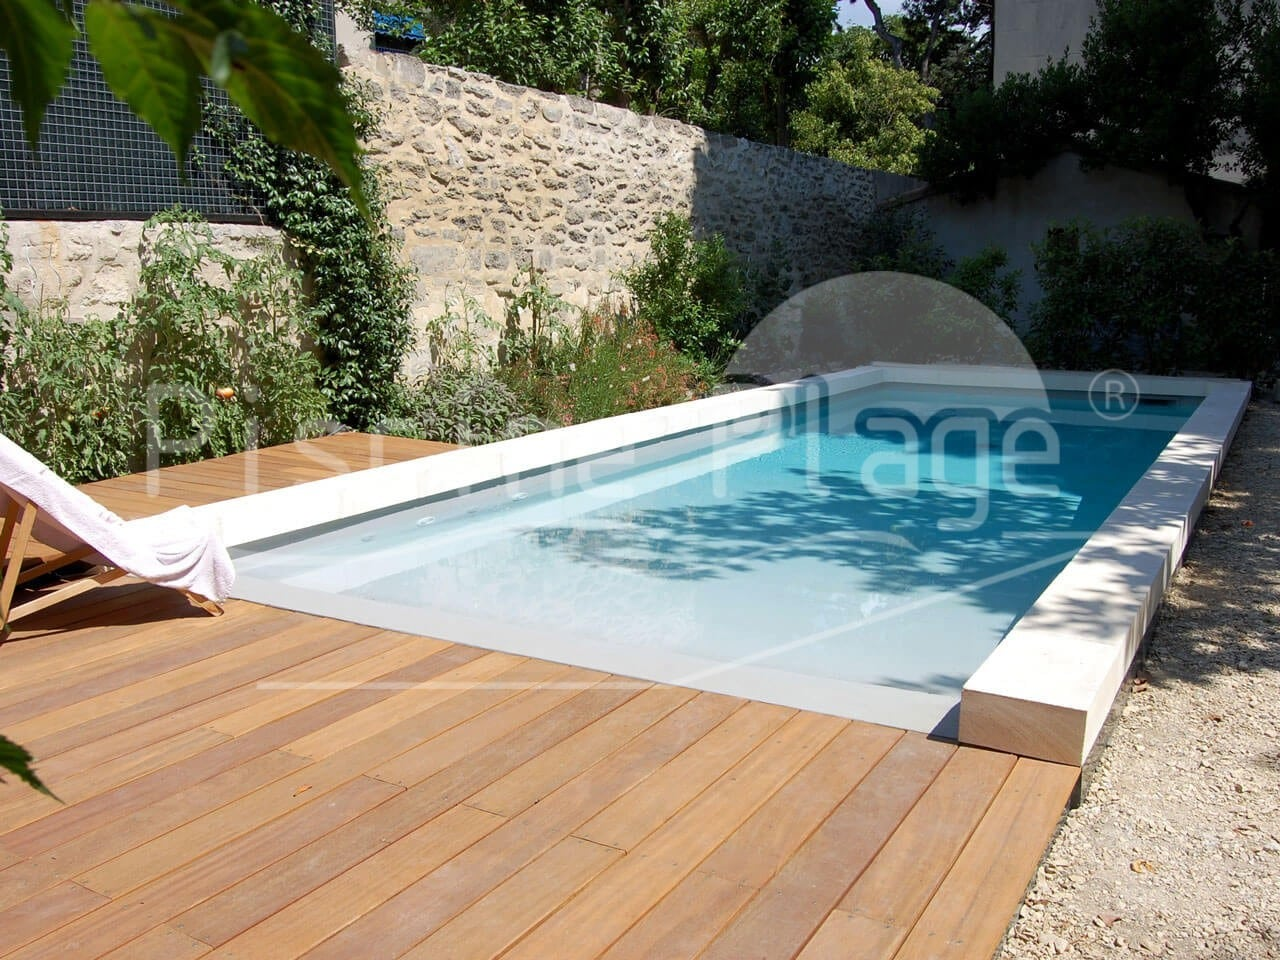 Piscine rectangulaire piscine bois rectangulaire for Piscine design plage